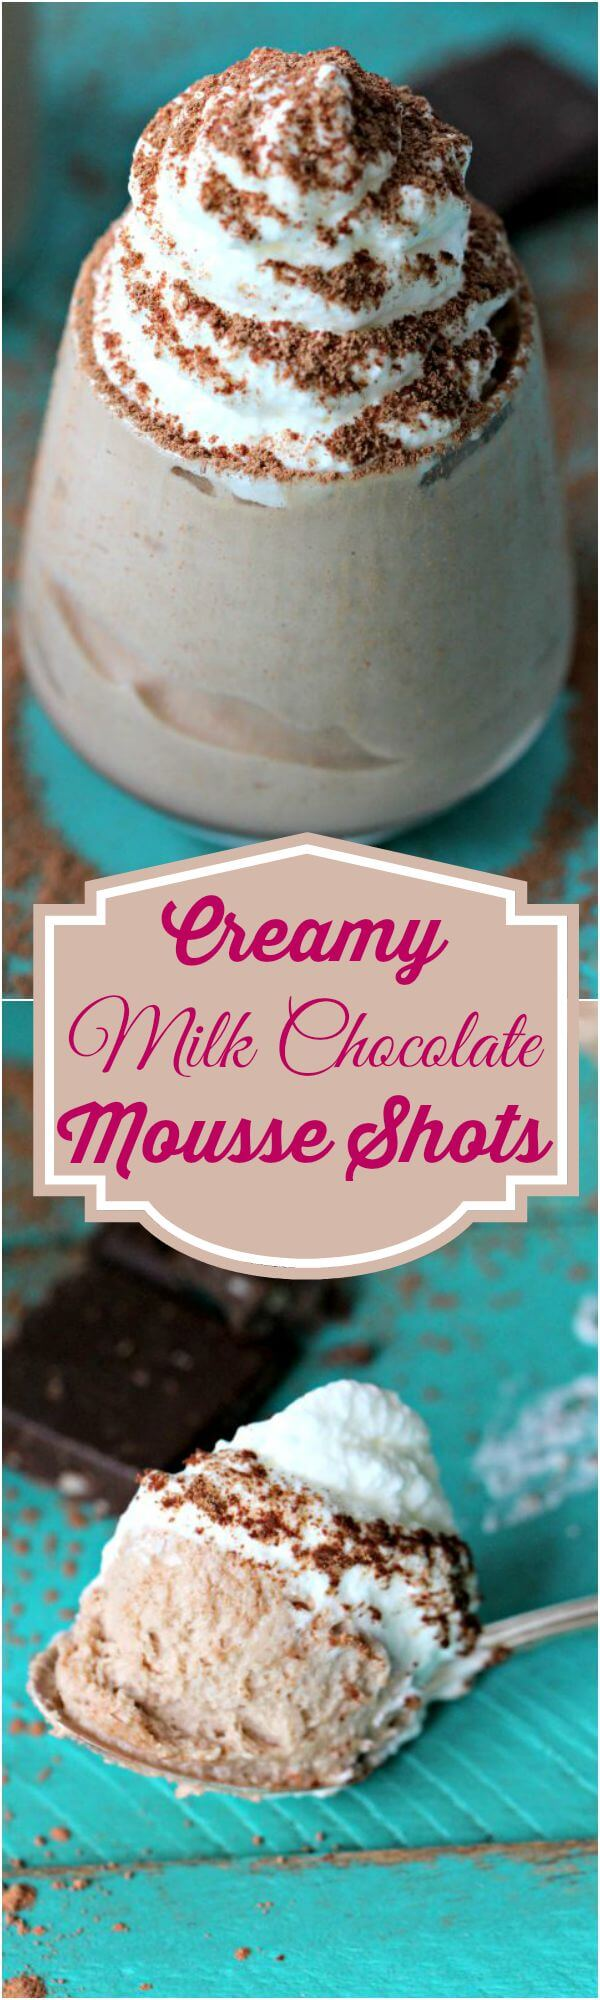 milk chocolate mousse shots